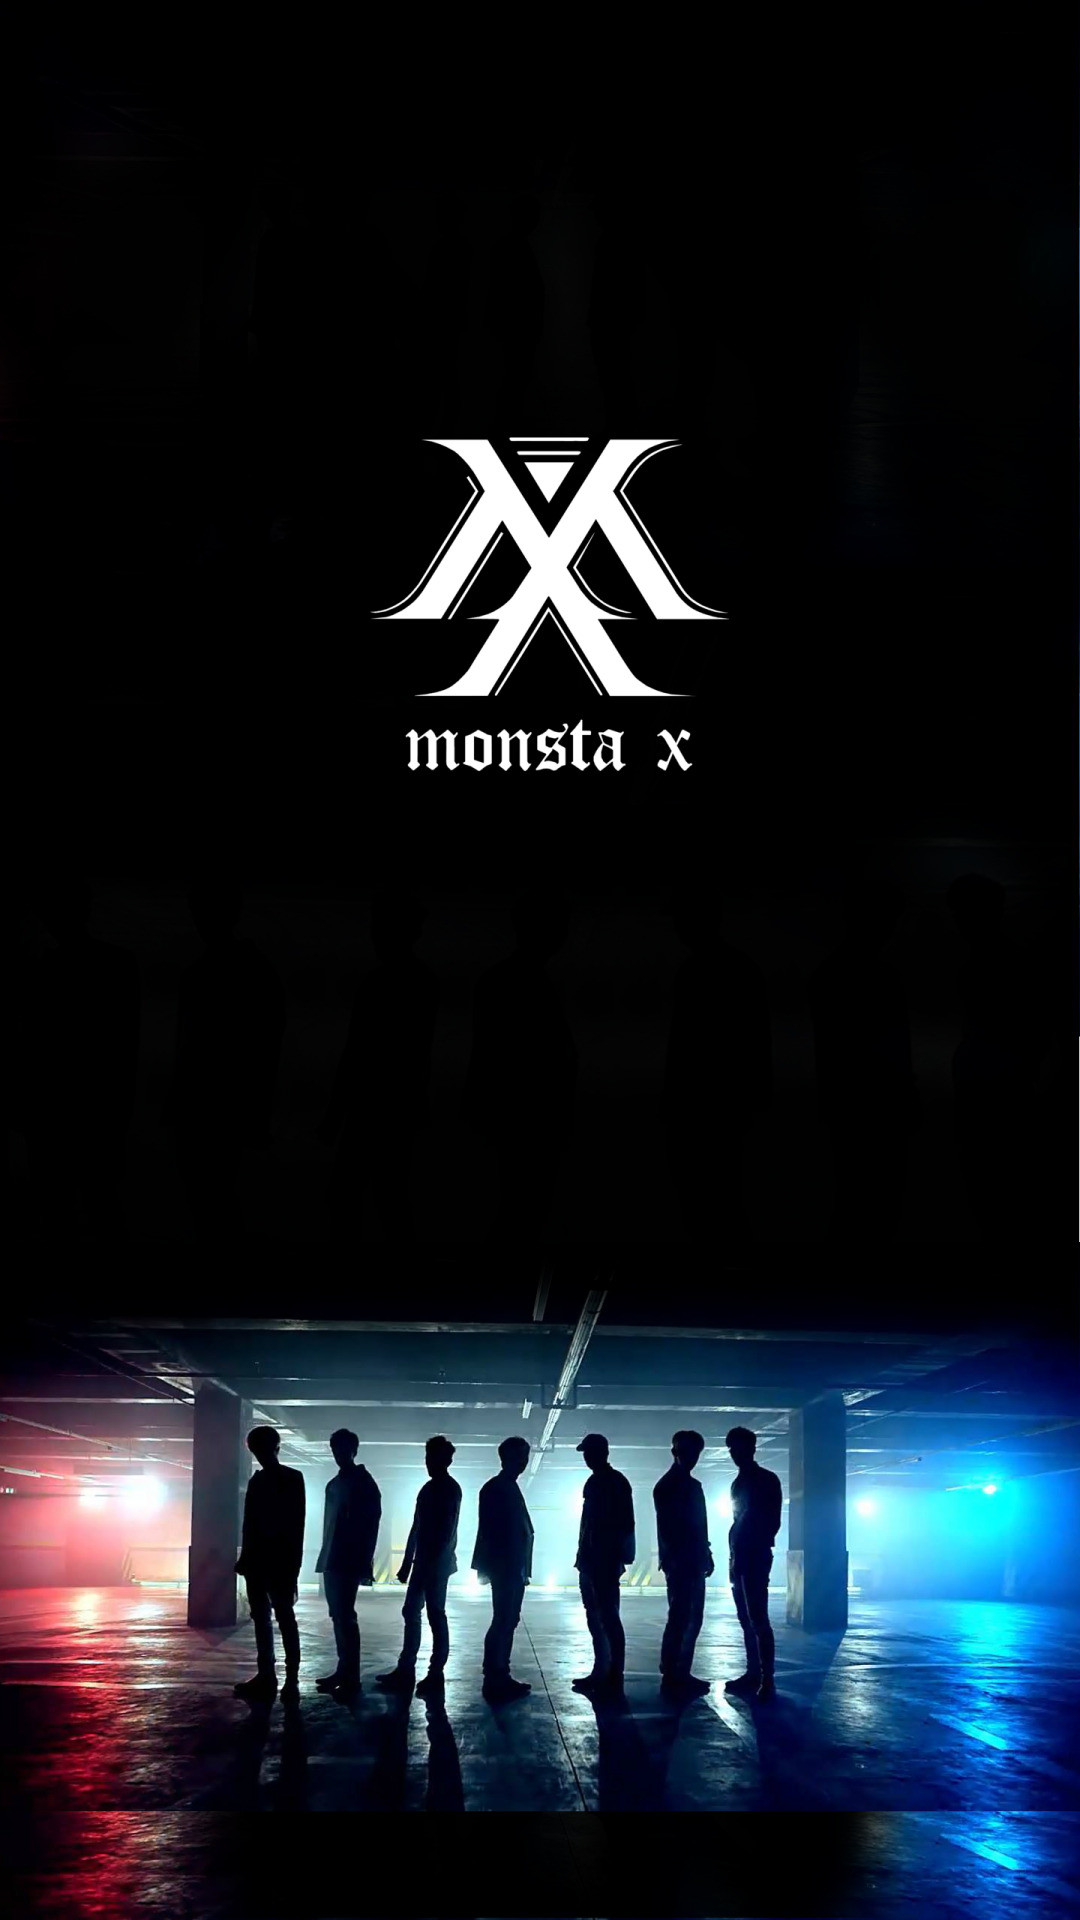 1080x1920 image image image image. MONSTA X | All In Era - Wallpapers